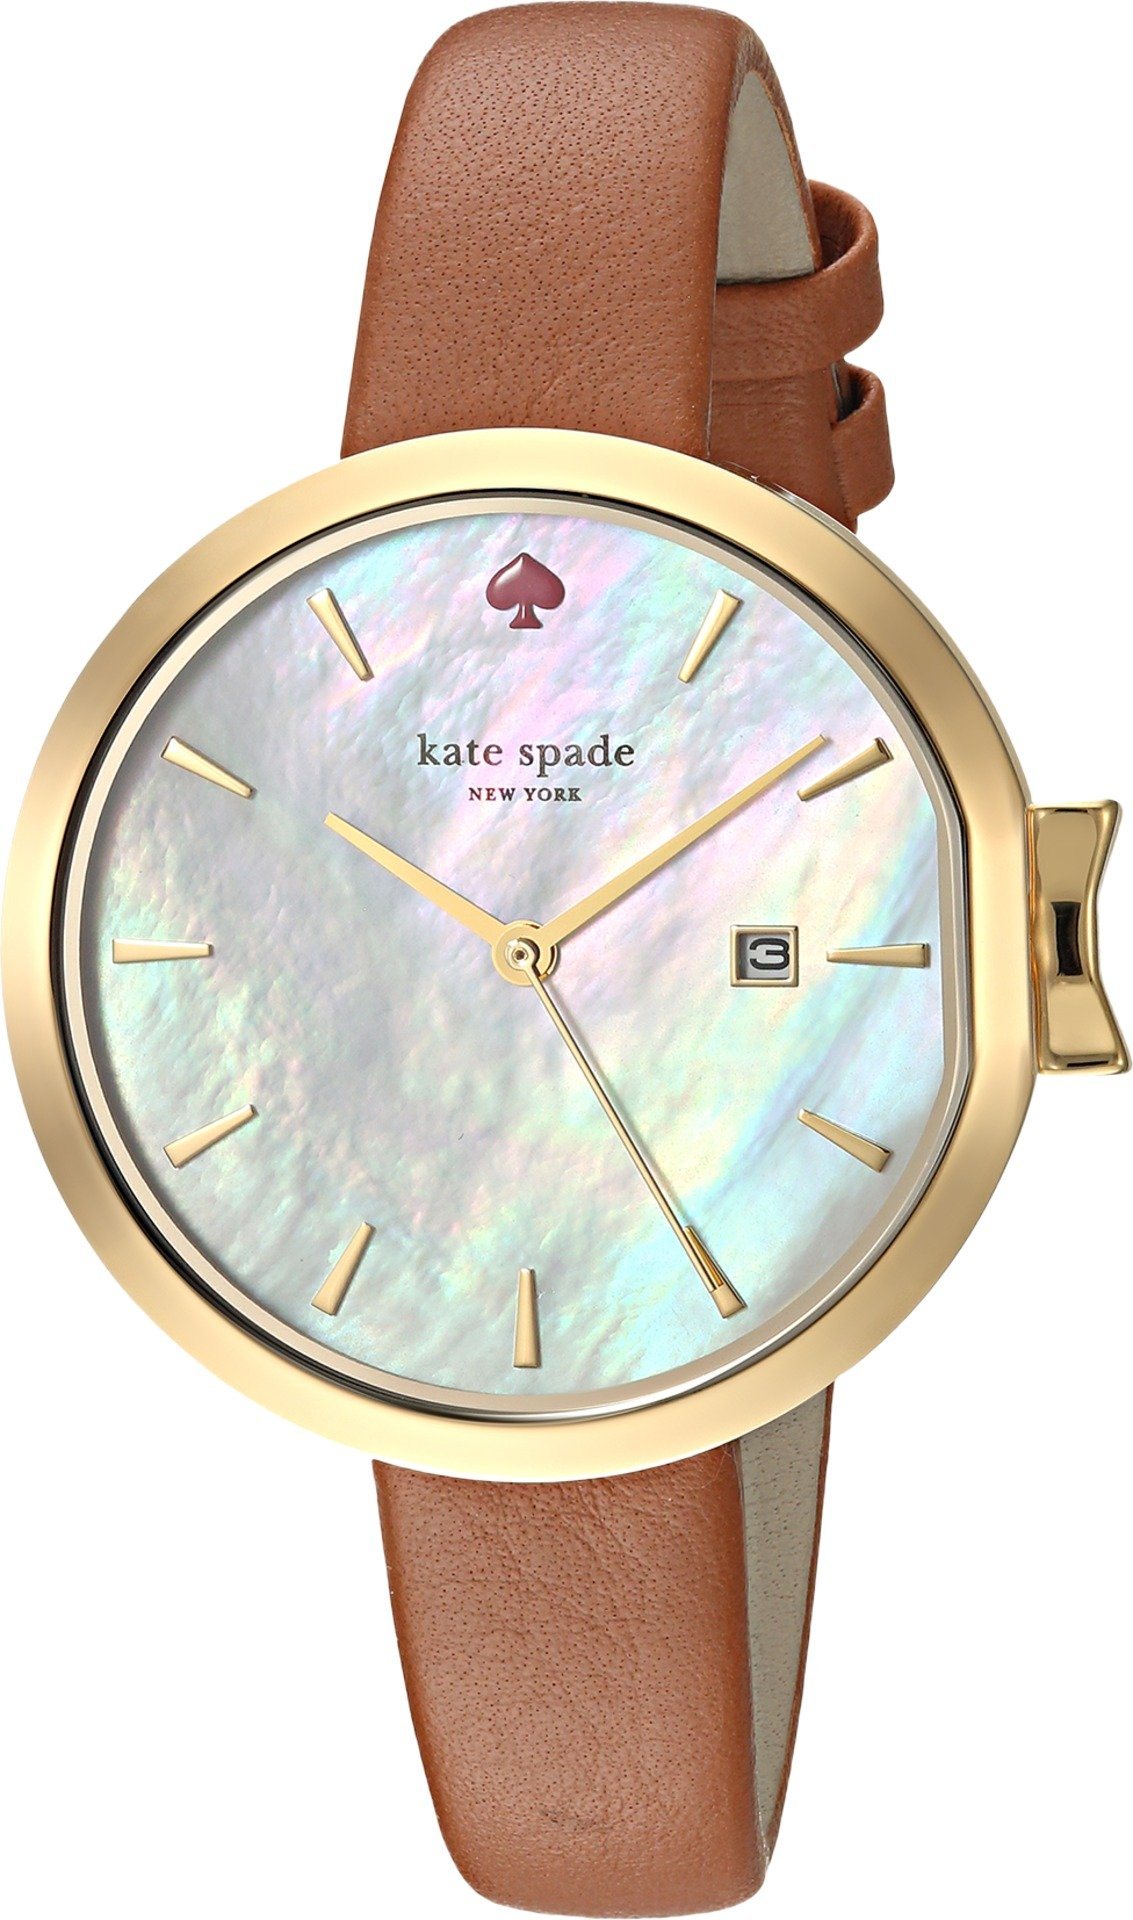 Kate Spade New York Women's 'Park Row' Quartz Stainless Steel and Leather Casual Watch, Color Brown (Model: KSW1324)